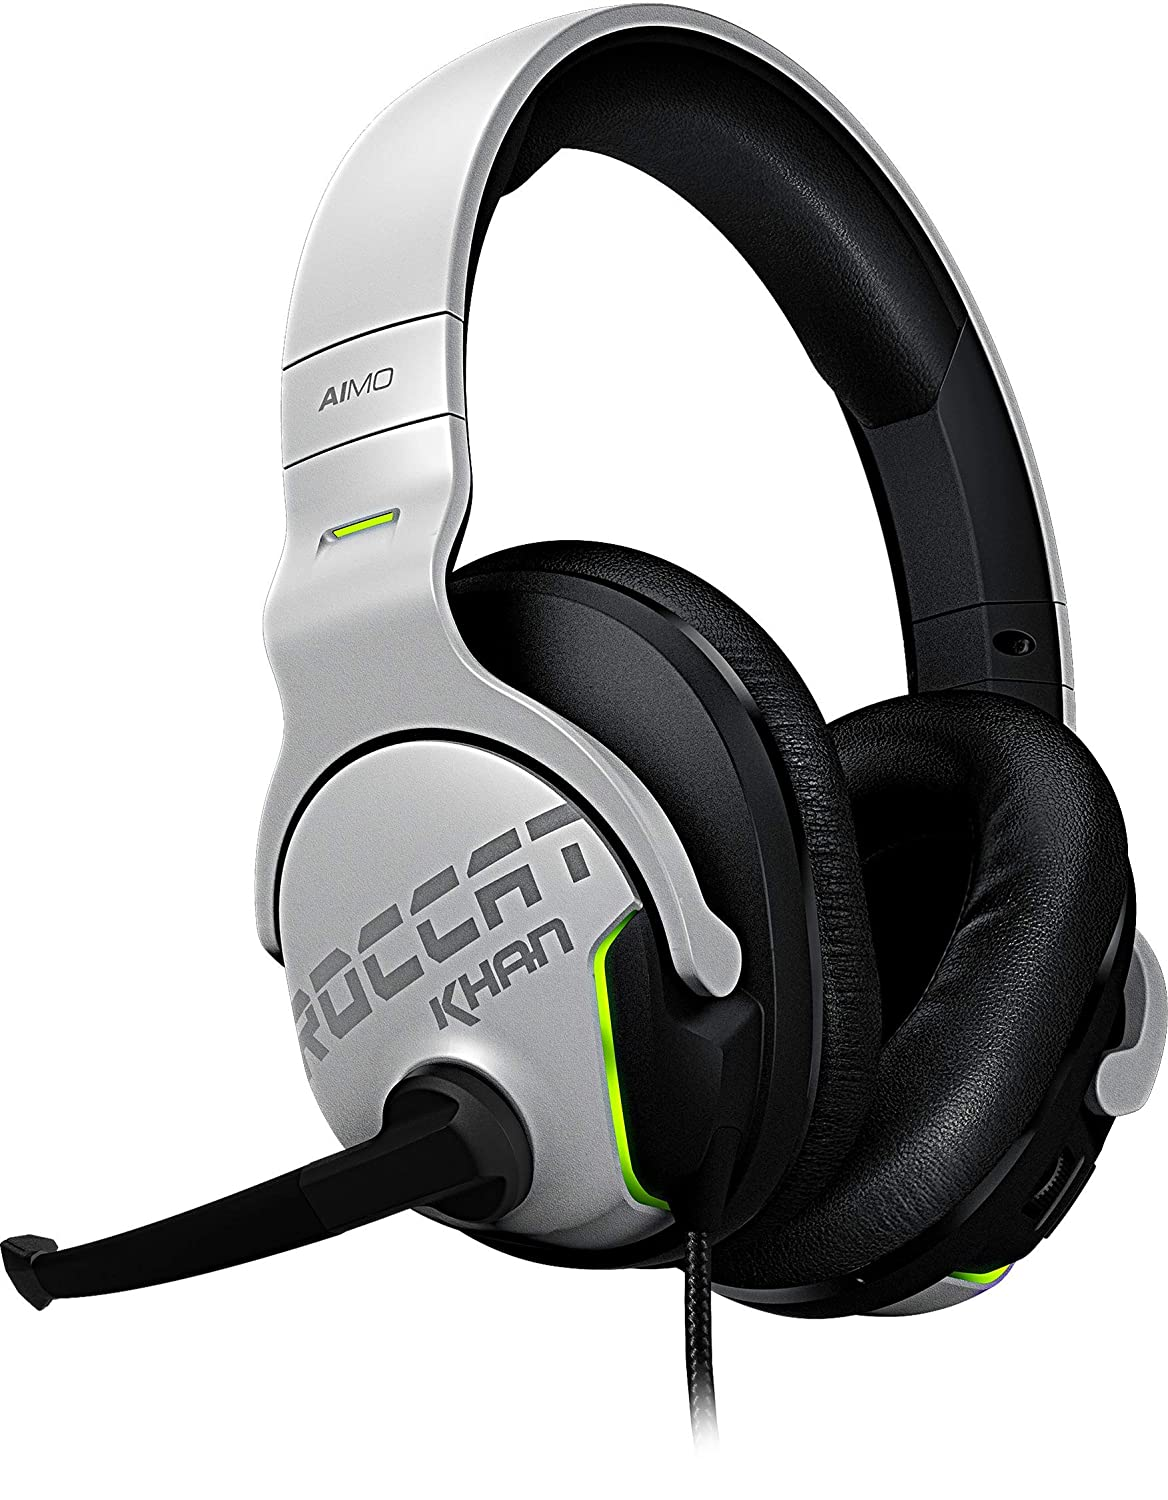 Roccat Khan Aimo 7.1 Surround Gaming Kopfhö rer (Hi-Res Sound, USB, AIMO LED Beleuchtung, Real-Voice Mikrofon mit Mute-Funktion) schwarz ROC-14-800